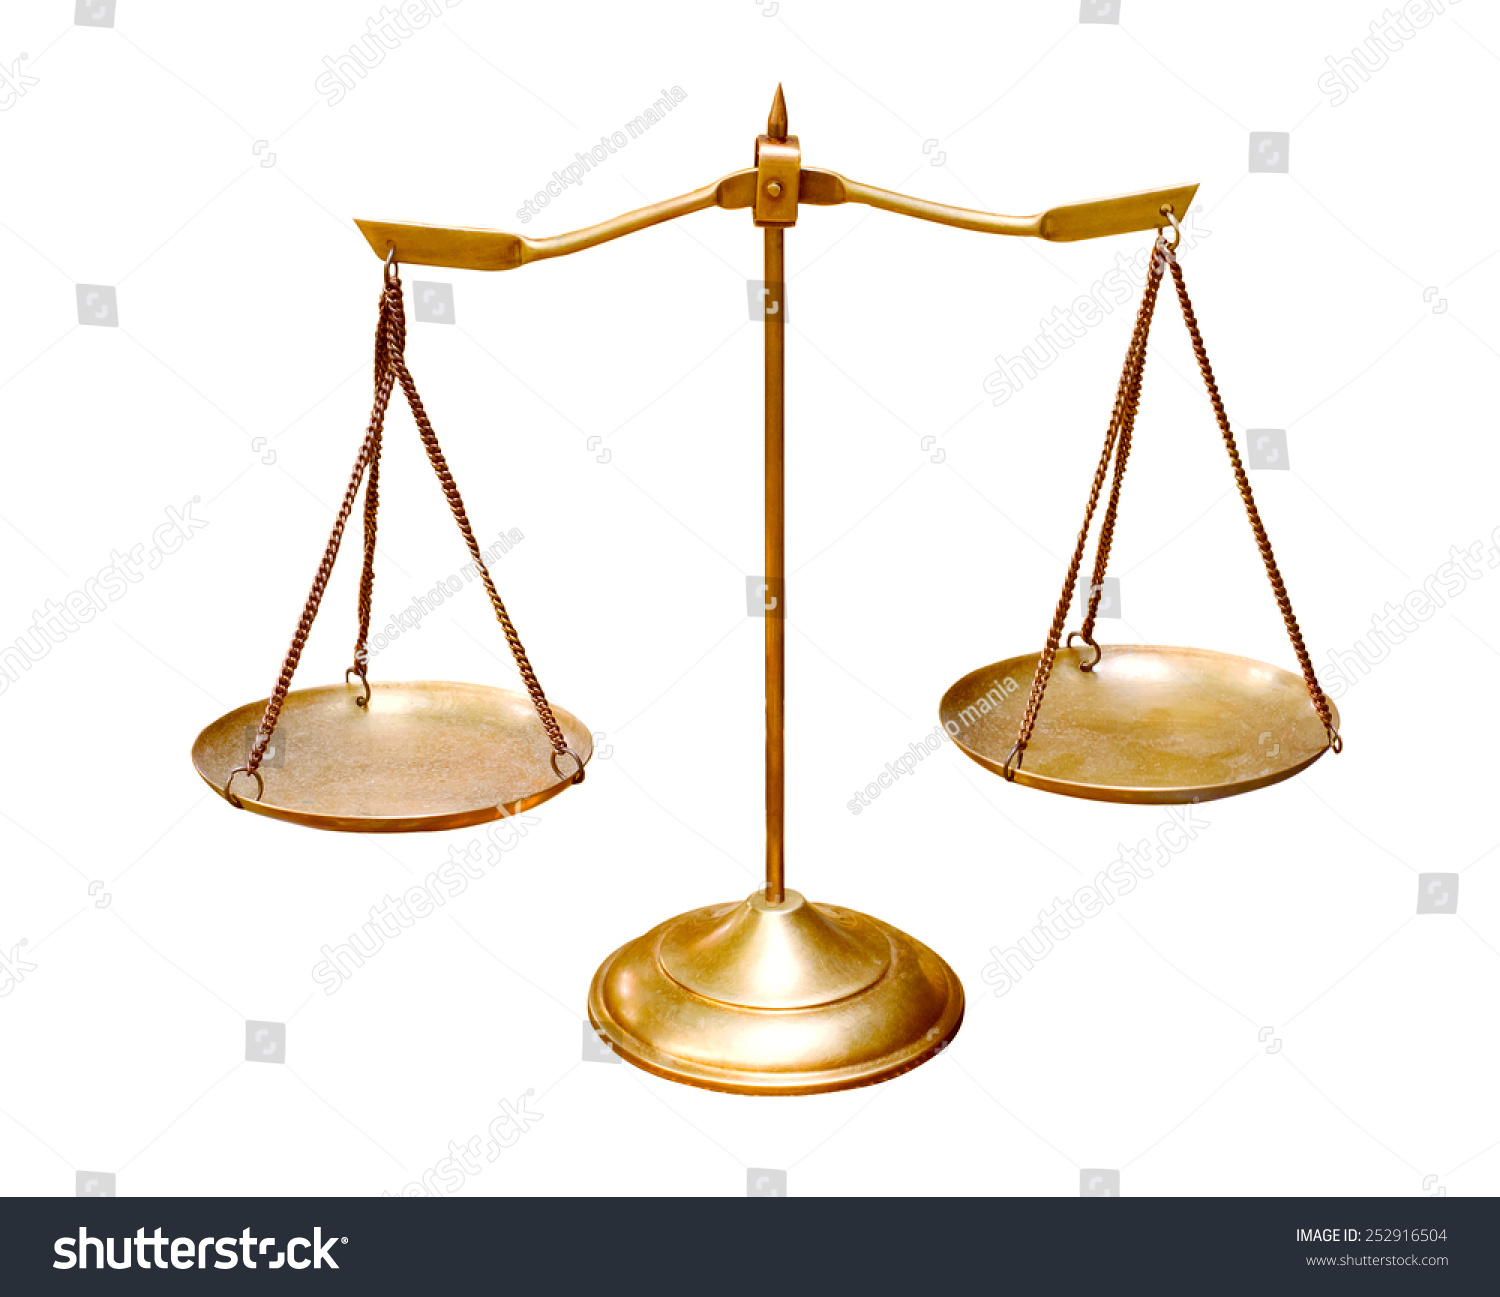 gold brass balance scale isolated on stock photo 252916504